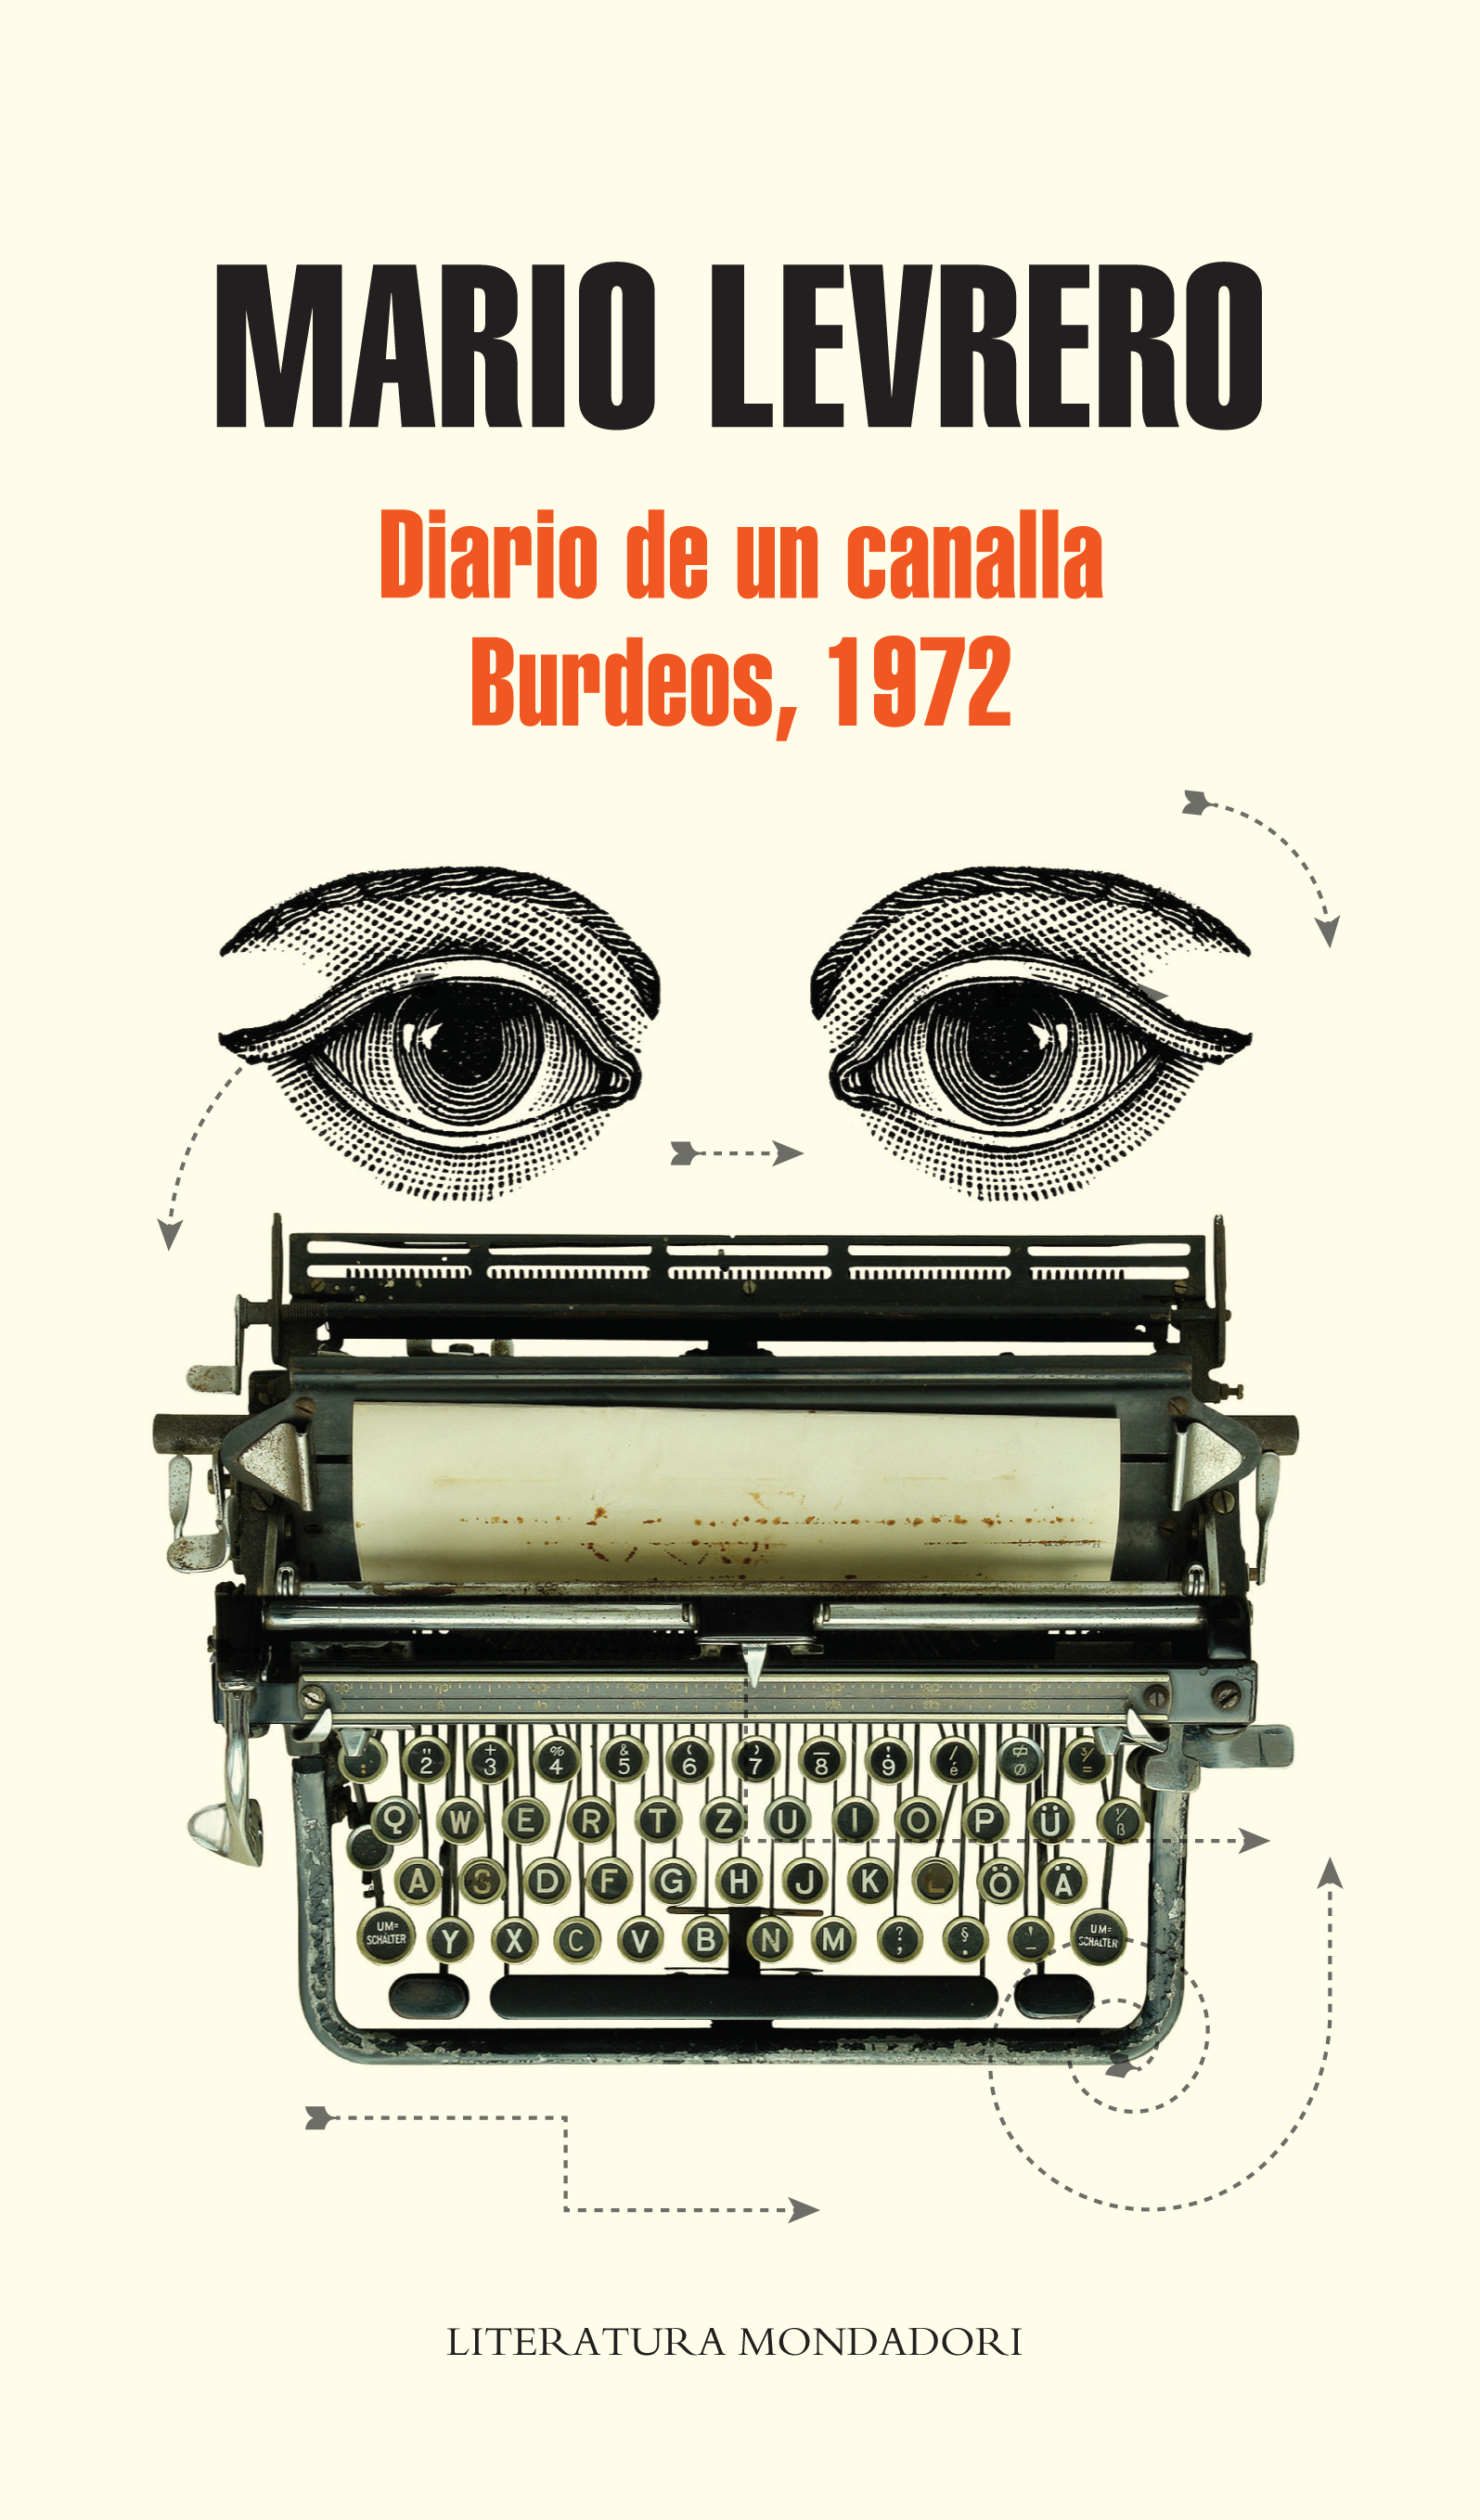 Diary of a swine and Bordeaux, 1972 (Diario de un canalla /Burdeos 1972)